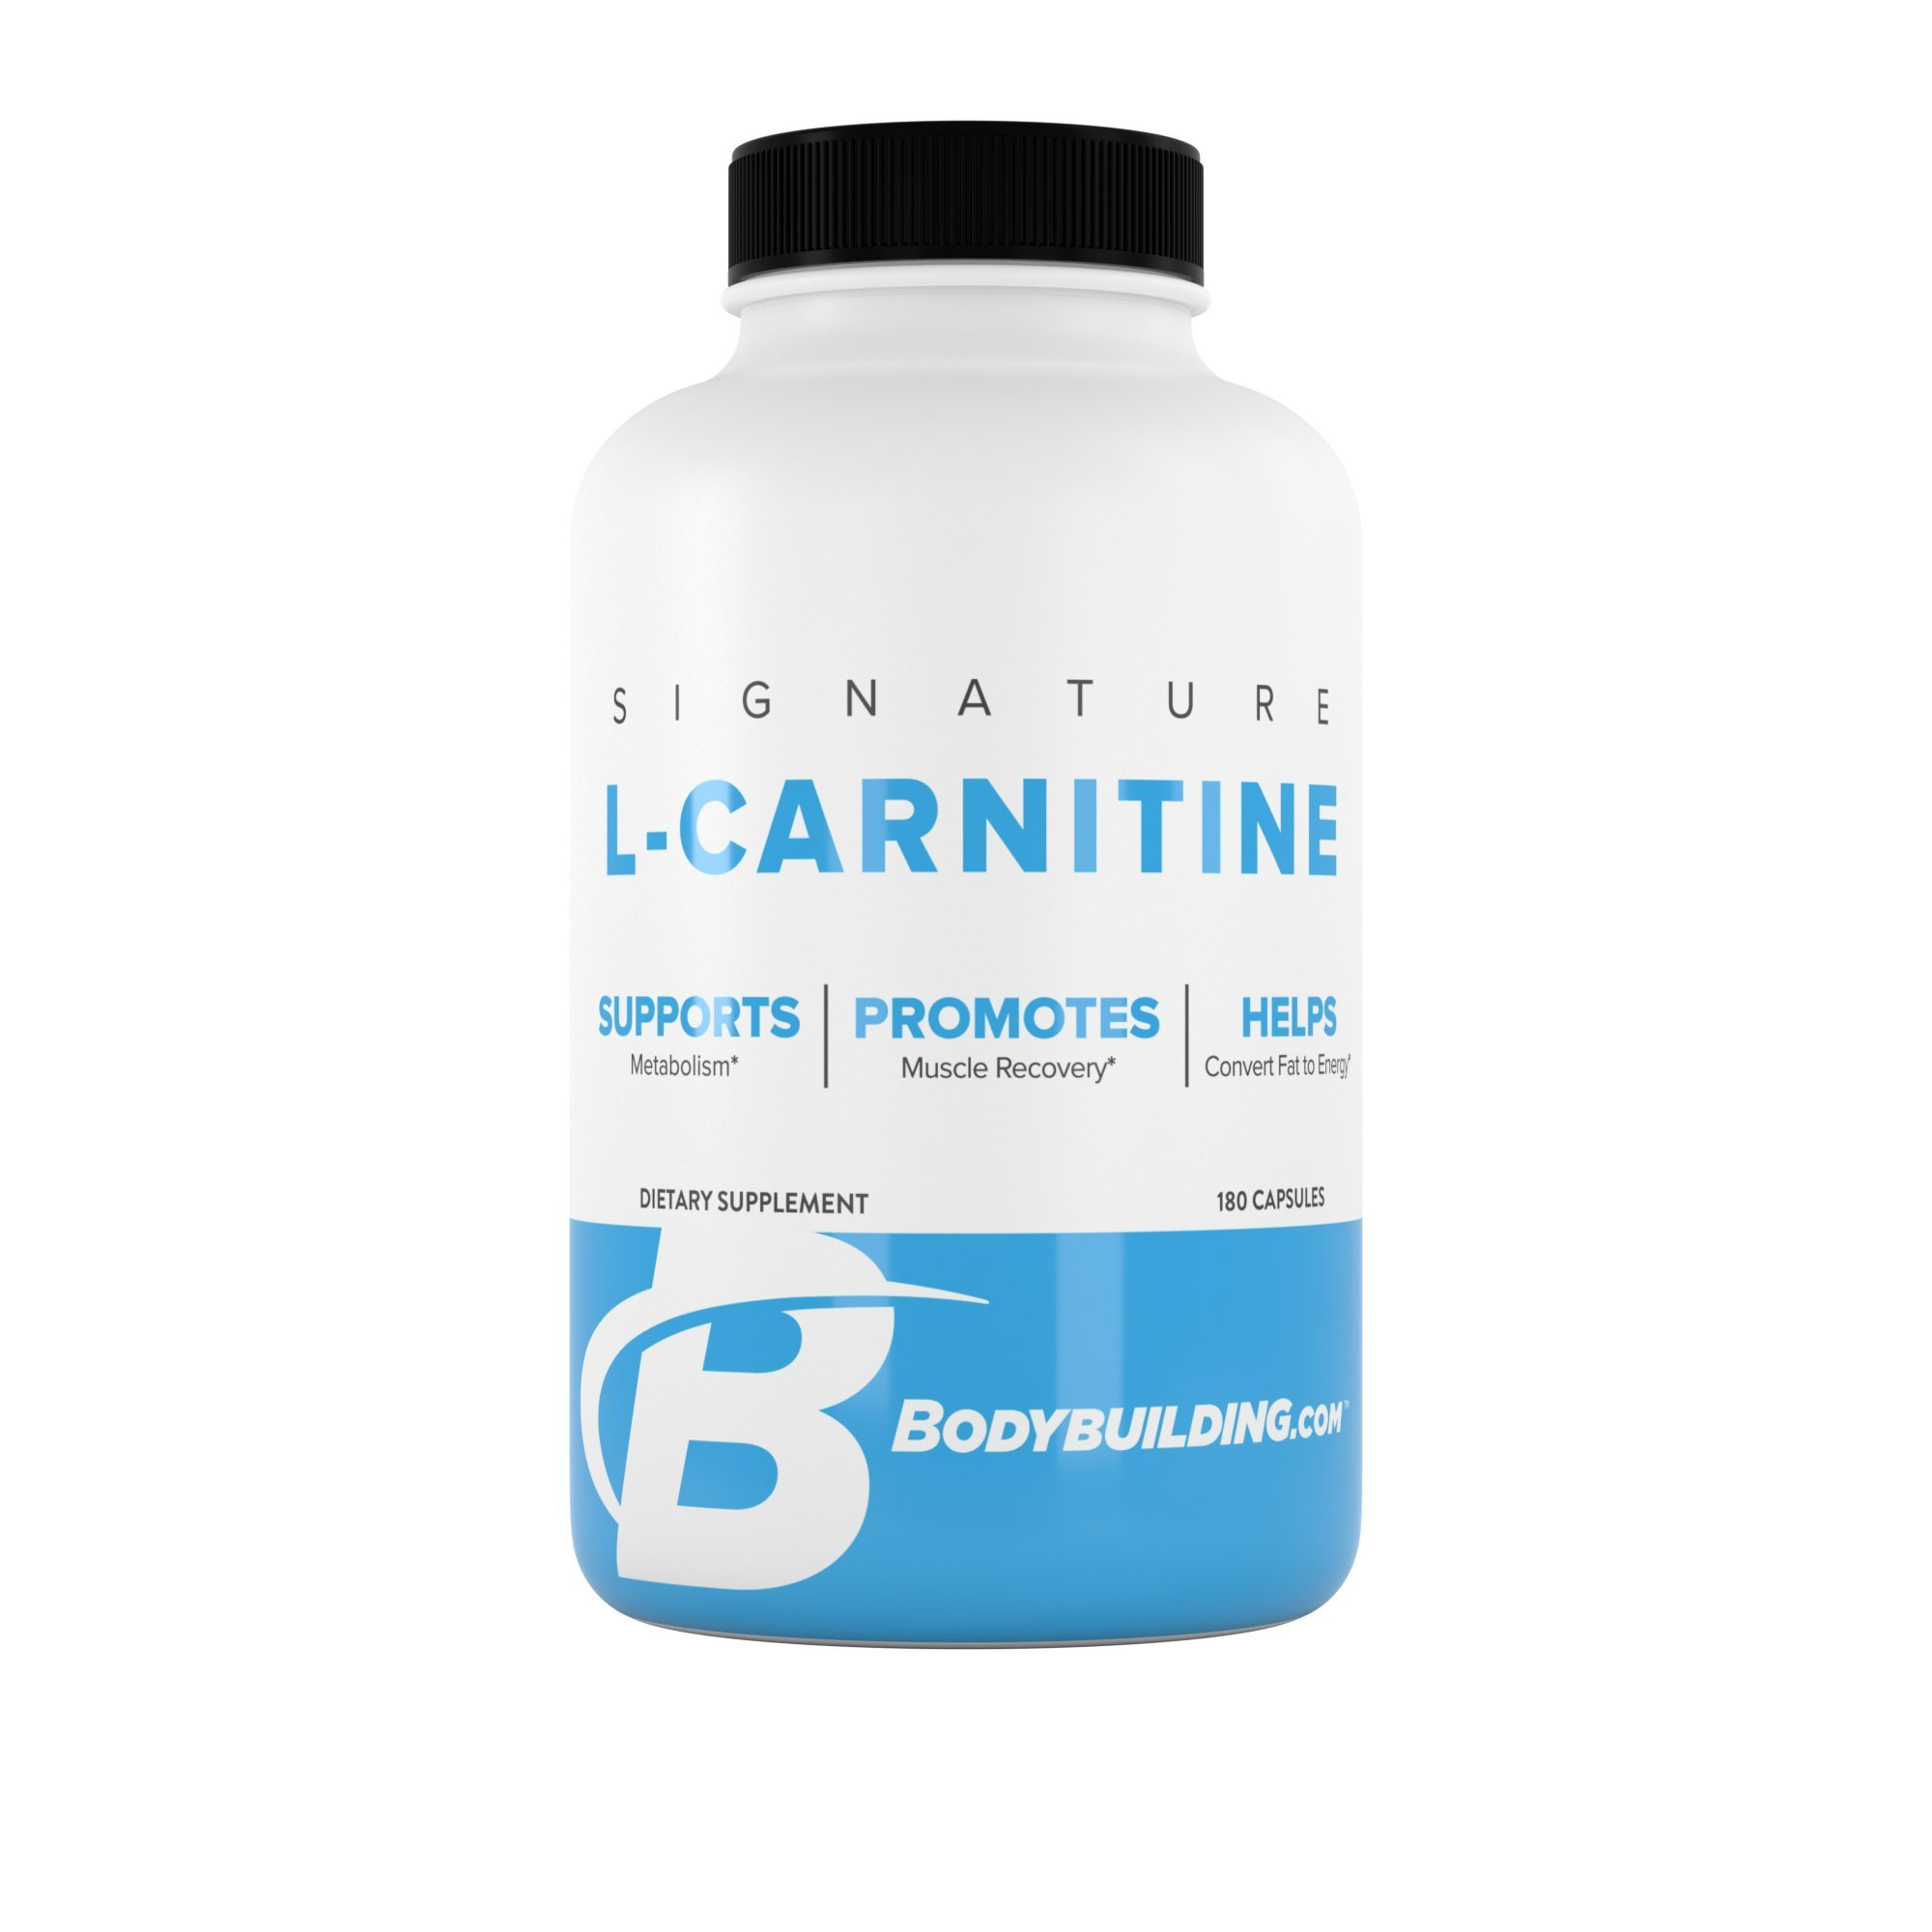 BodyBuilding.Com Signature L-Carnitine Capsules | CARNIPURE Amino Acid | Support Metabolism, Helps Convert Fat to Energy | 180 Servings